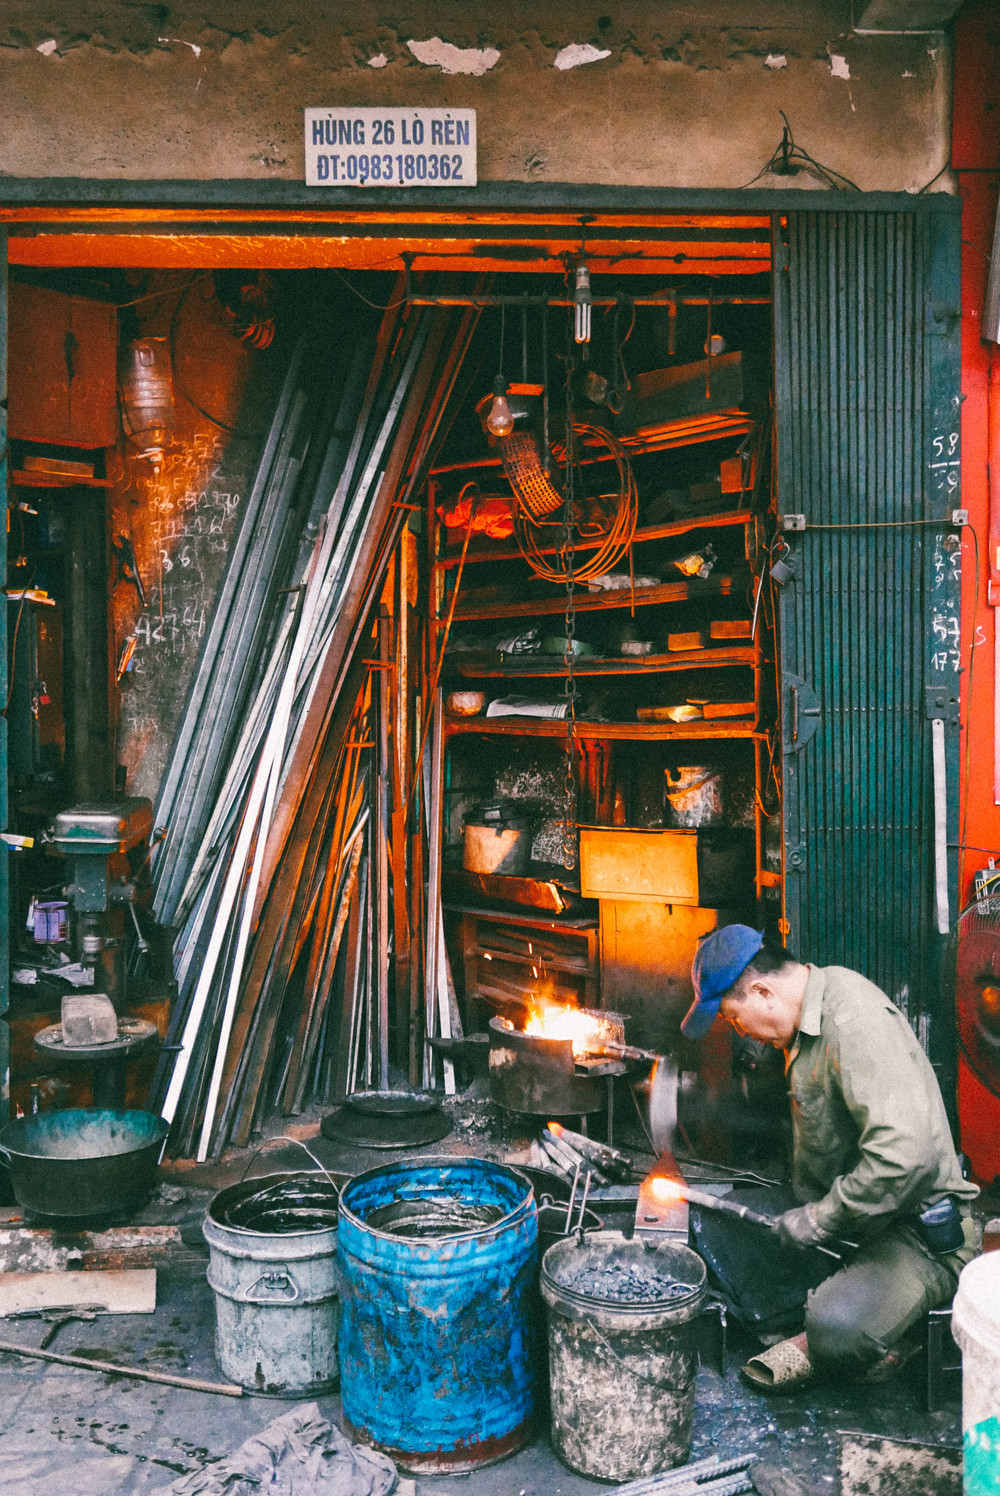 A metalworker on the street in Hanoi's Old Quarter.